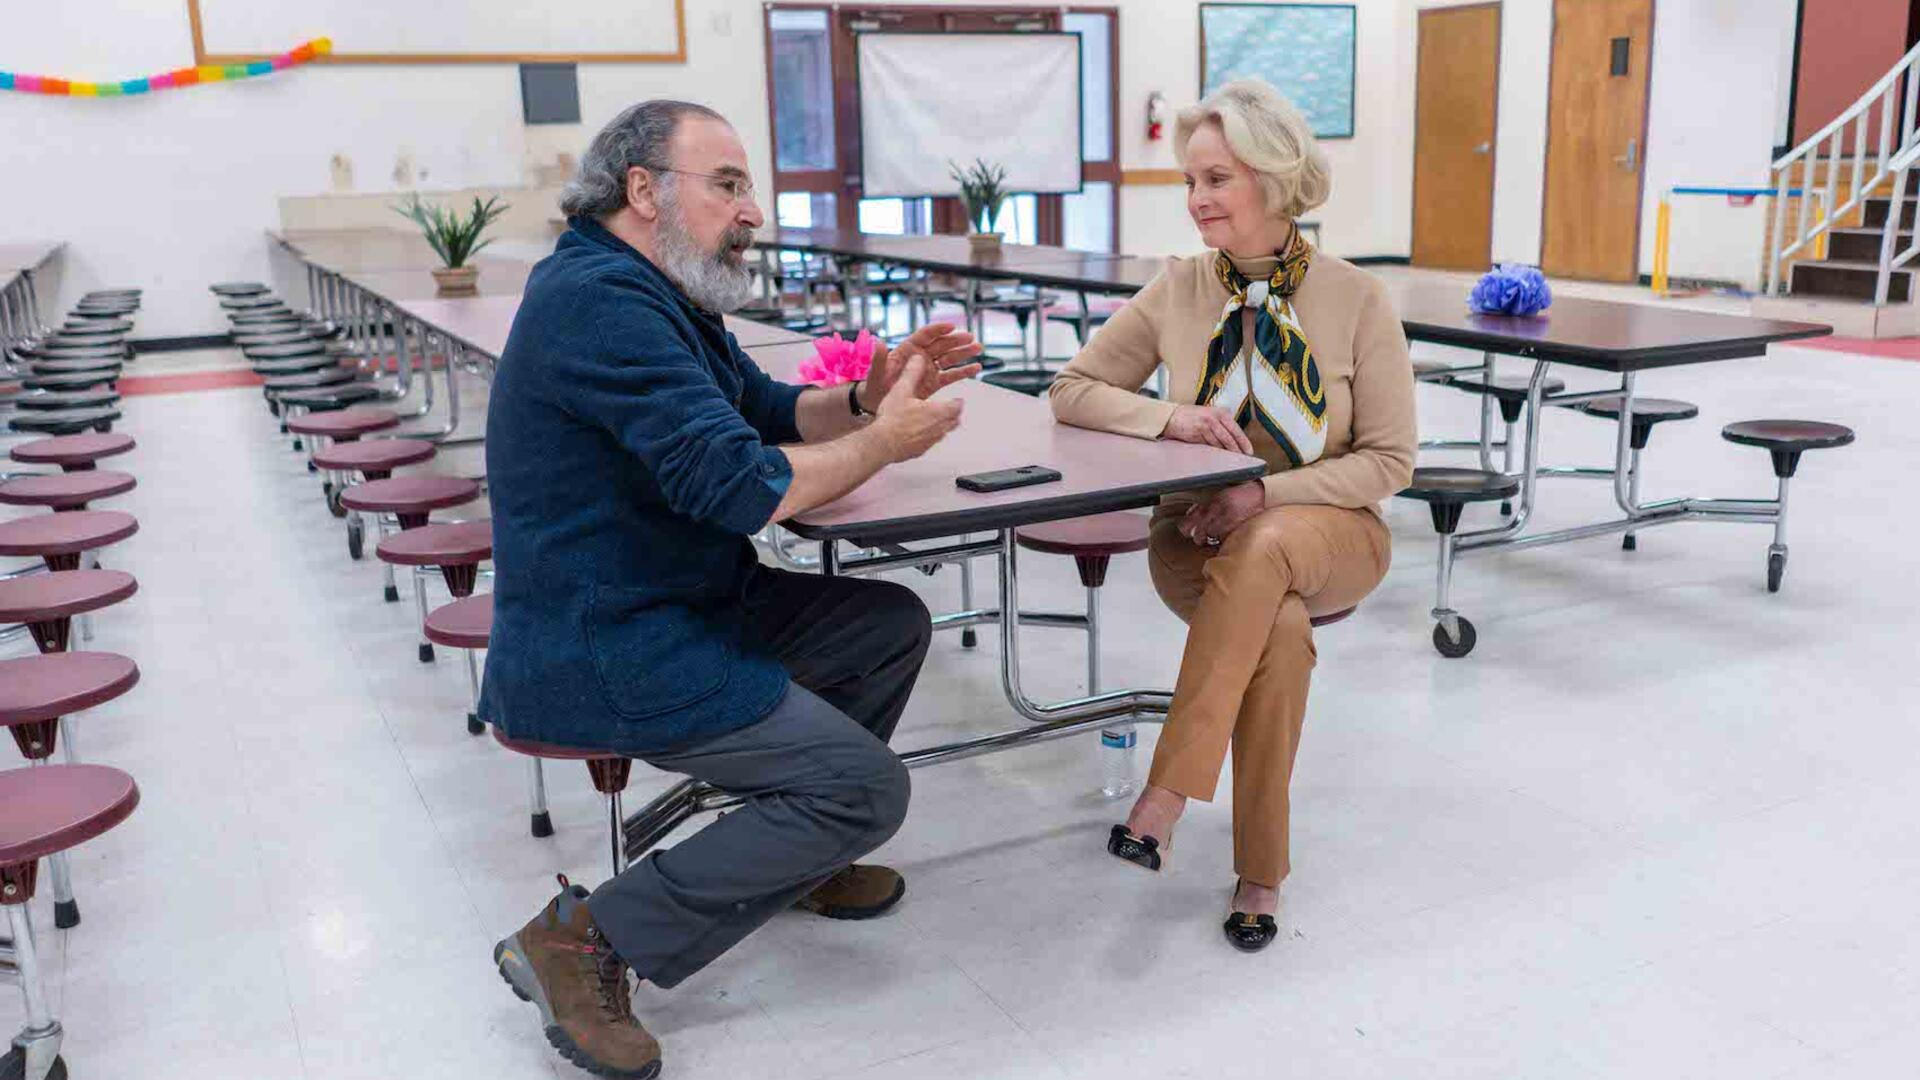 Mandy Patinkin and Cindy McCain at International Rescue Committee welcome center in Phoenix, Arizona